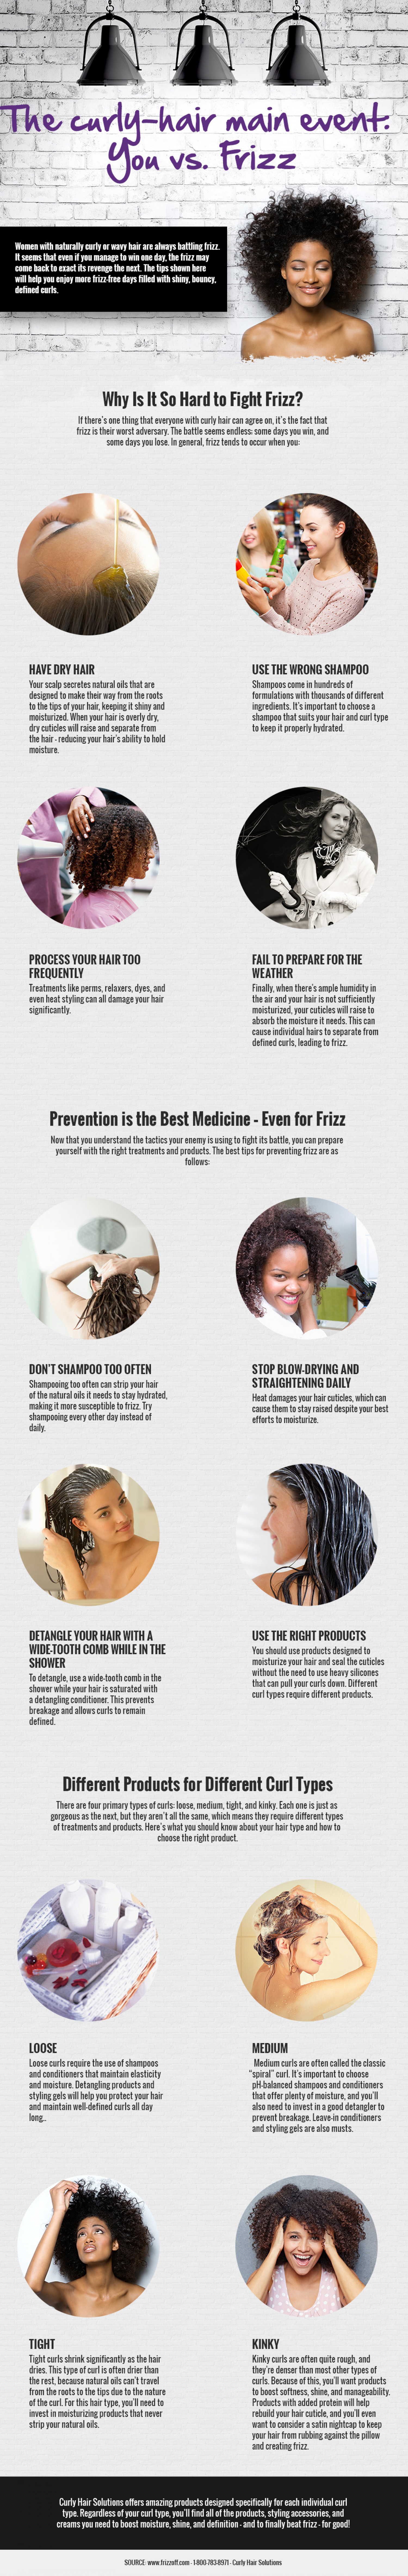 The Curly Hair Main Event: You vs. Frizz Infographic